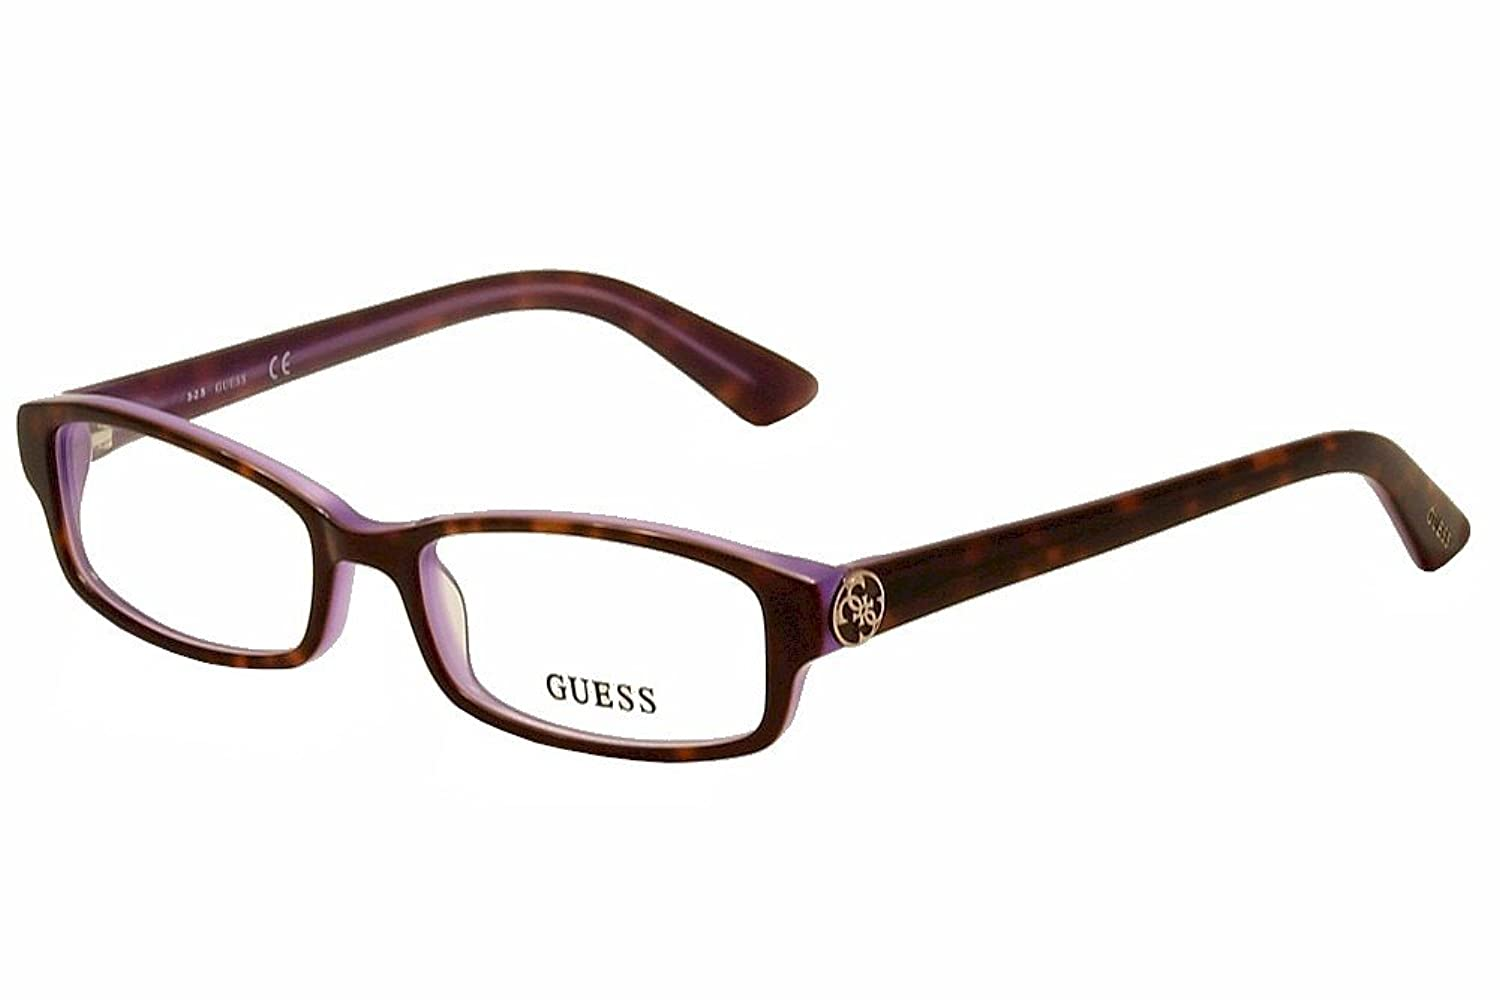 Eyeglasses Guess GU 2526 GU2526 052 at Amazon Men\'s Clothing store: